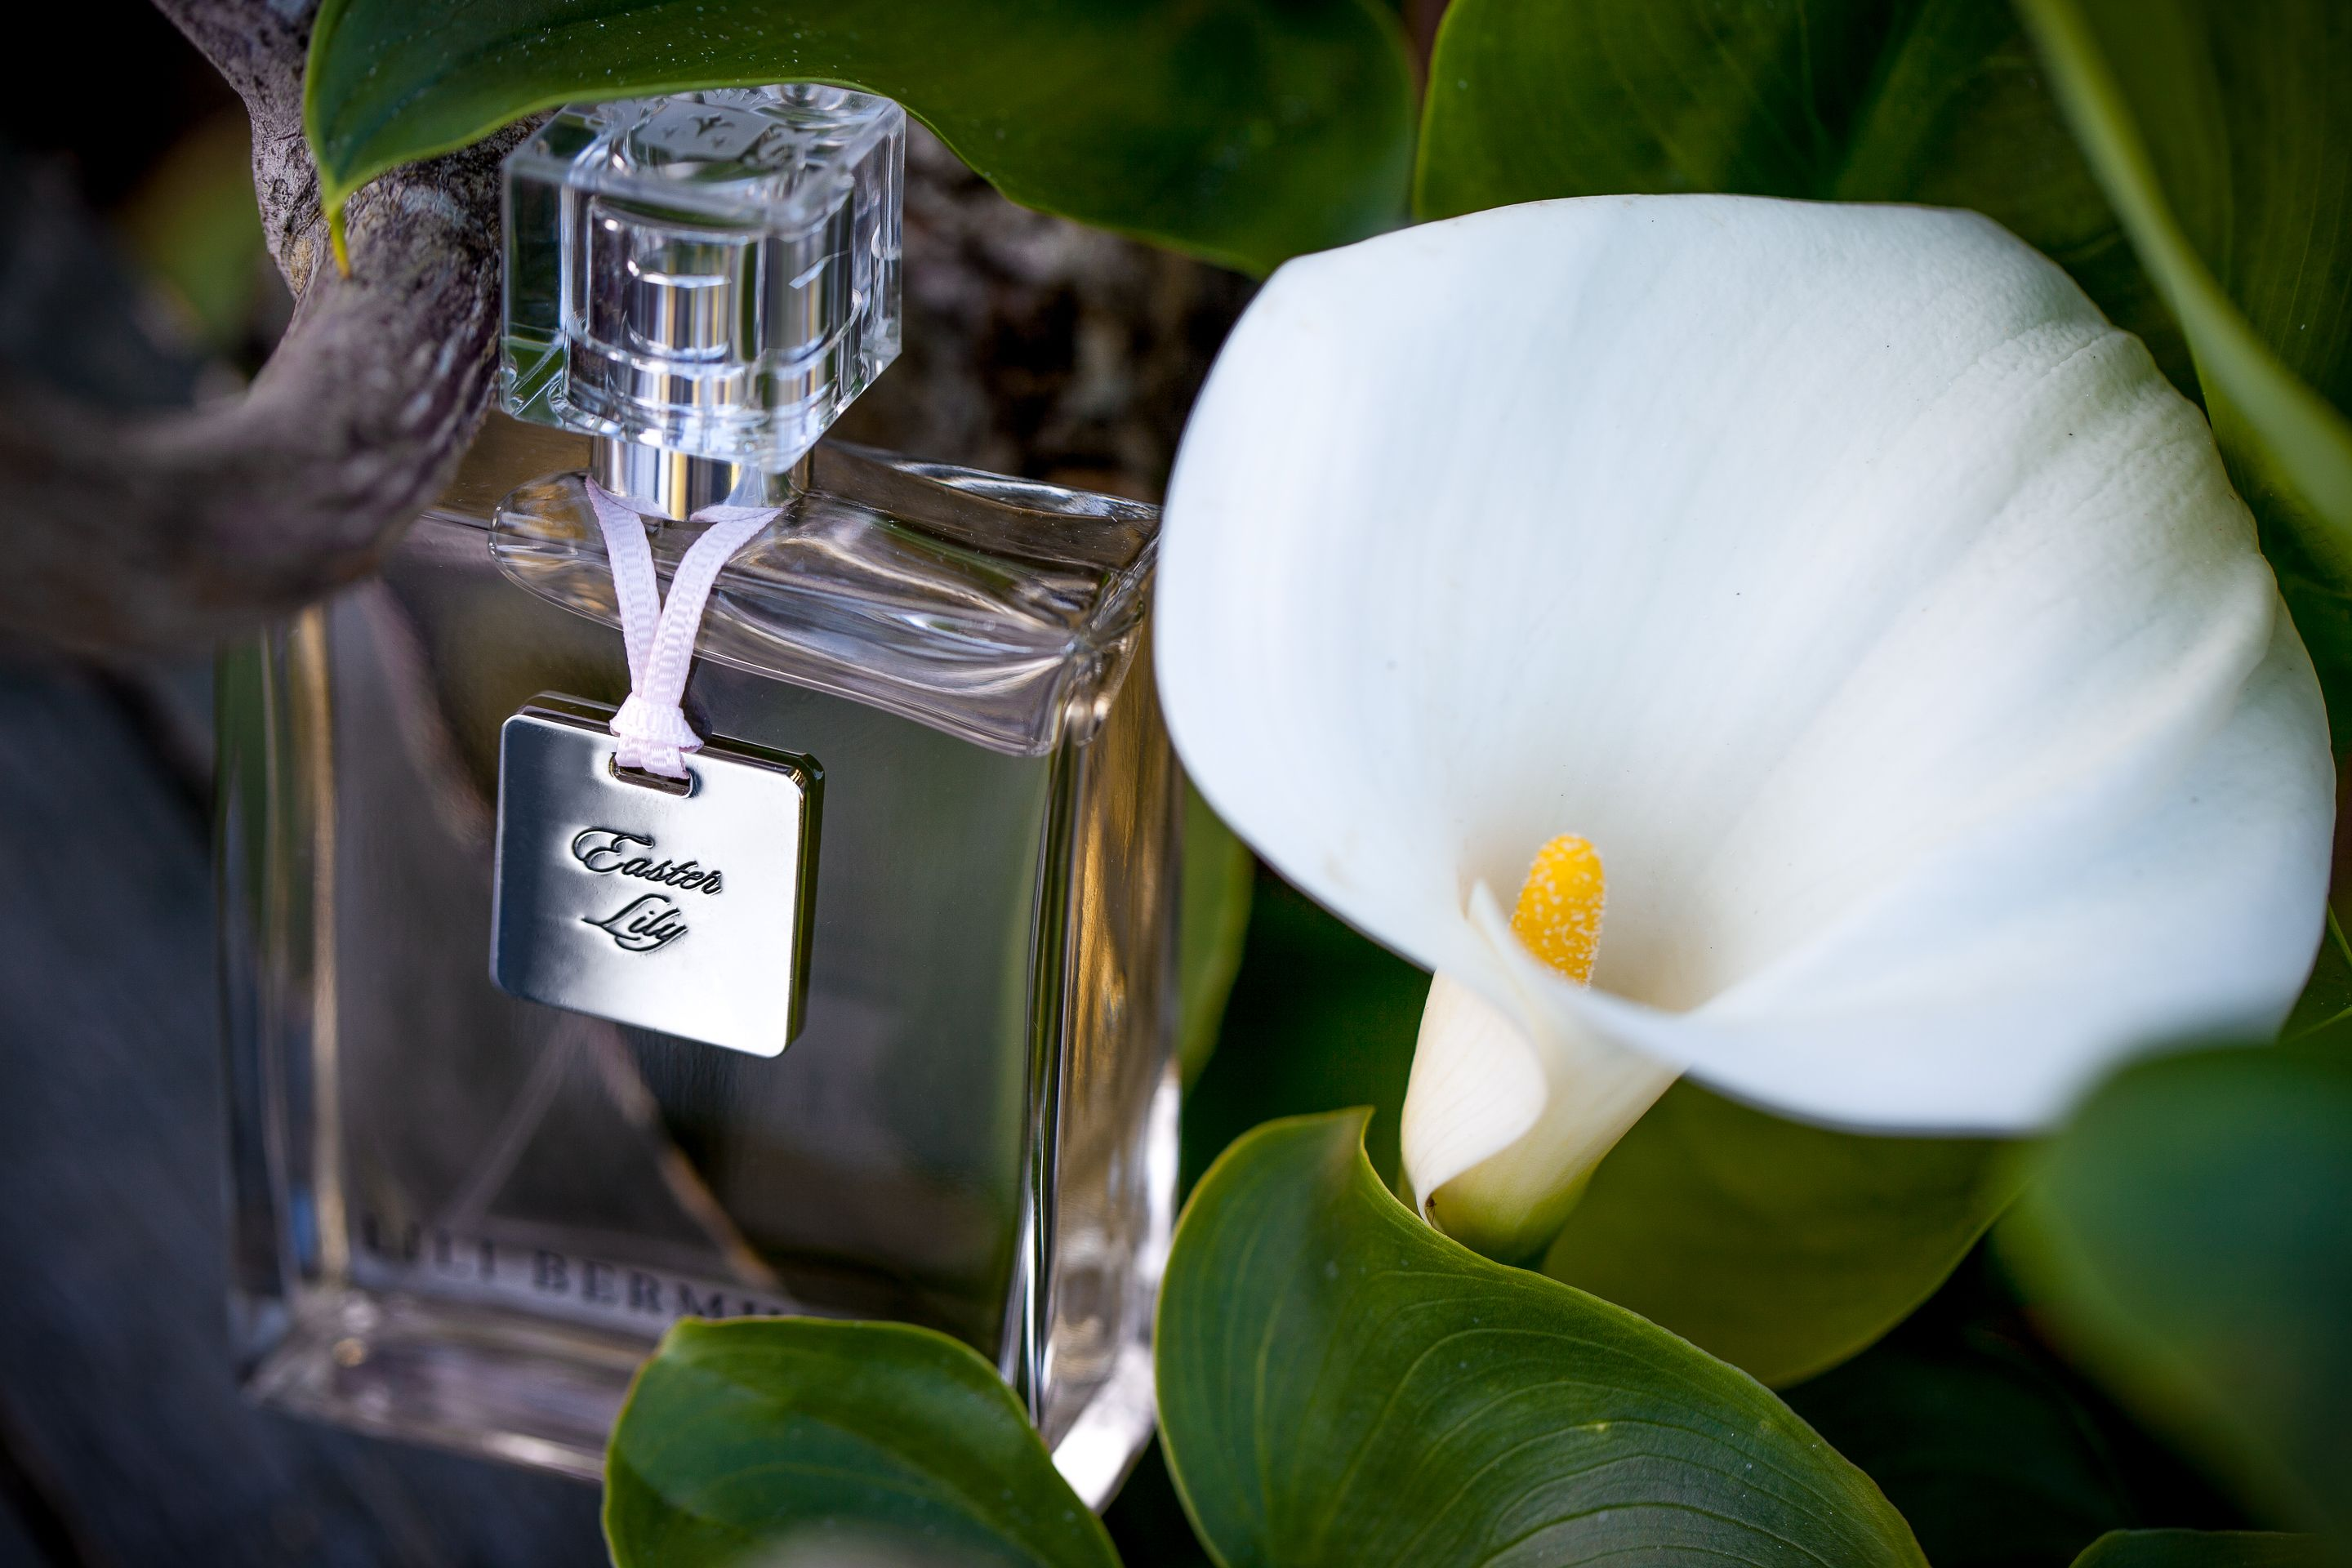 Easter lily is lili bermudas raison dtre this fragrance is our this fragrance is our personal homage to this magnificent white flower emblem of our beautiful island easter lily is a classic white floral fragrance mightylinksfo